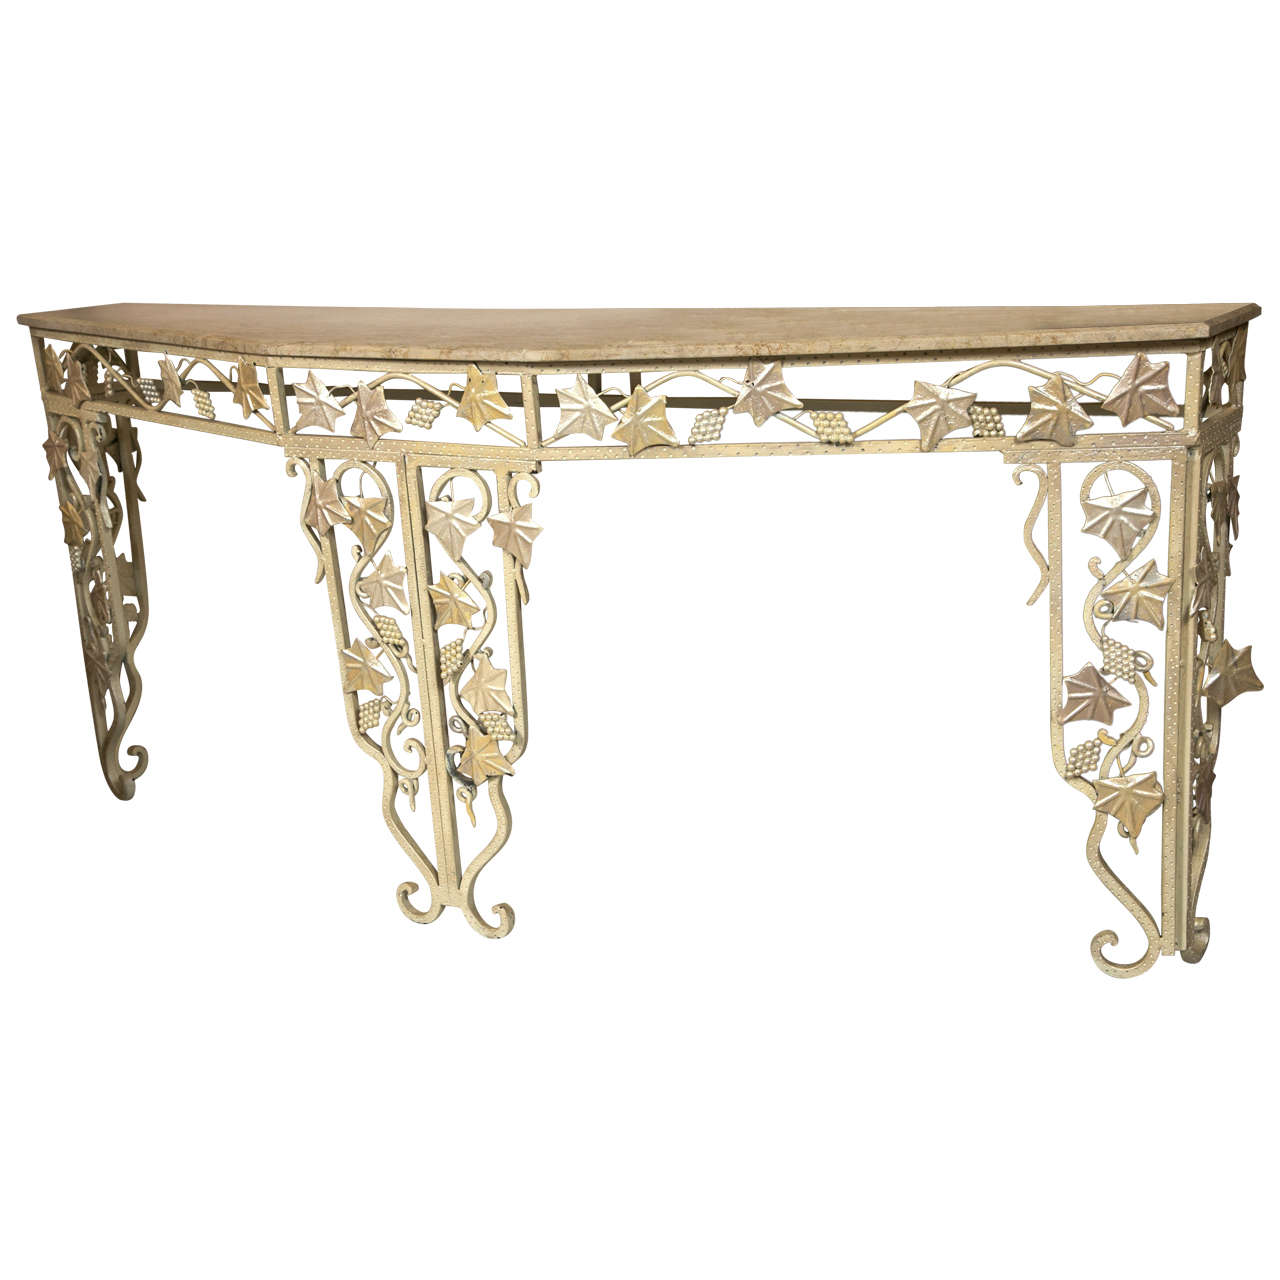 Art deco style marble top console table for sale at 1stdibs for Table 52 art smith